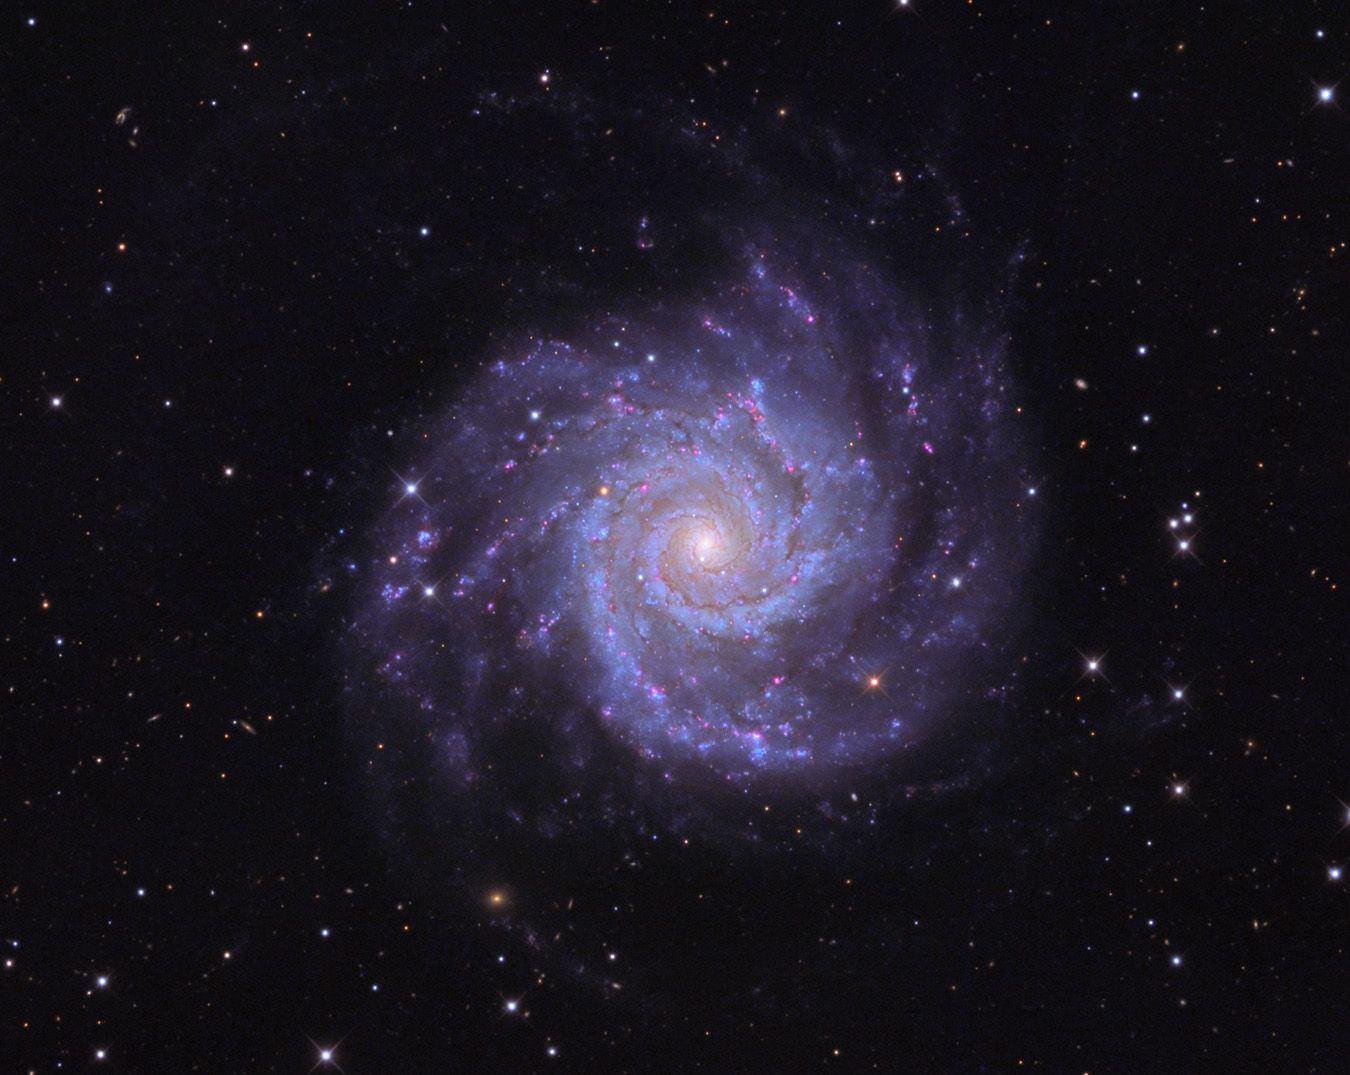 The Stunning Beauty Of The Perfect Spiral Galaxy M74